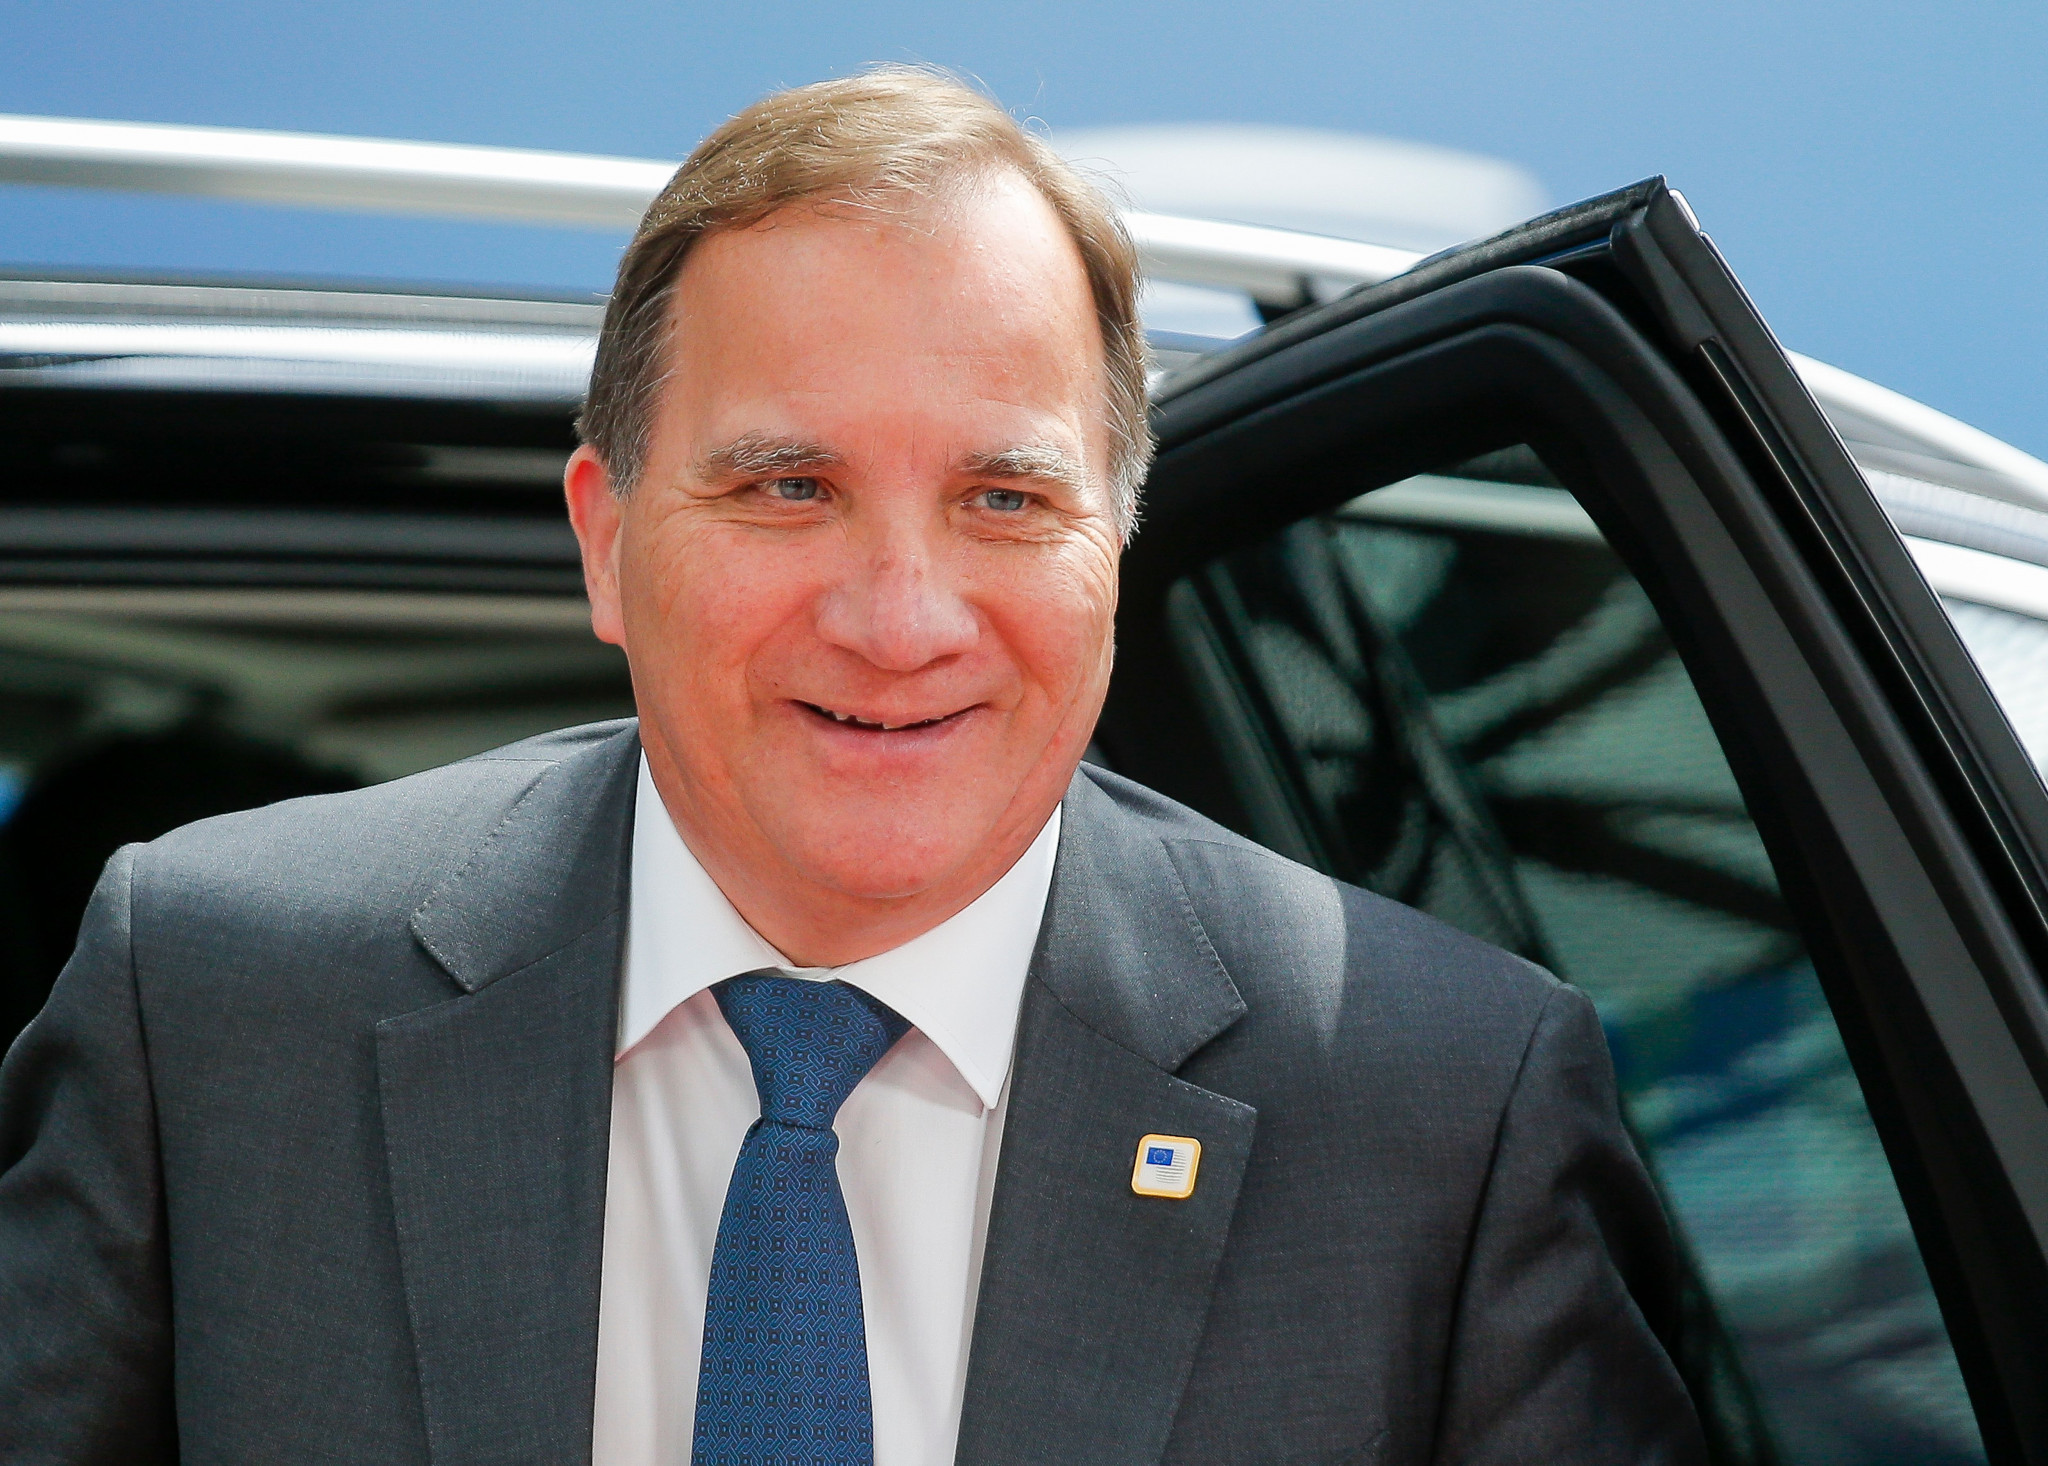 Sweden's Prime Minister Stefan Löfven is also due to attend the Session ©Getty Images